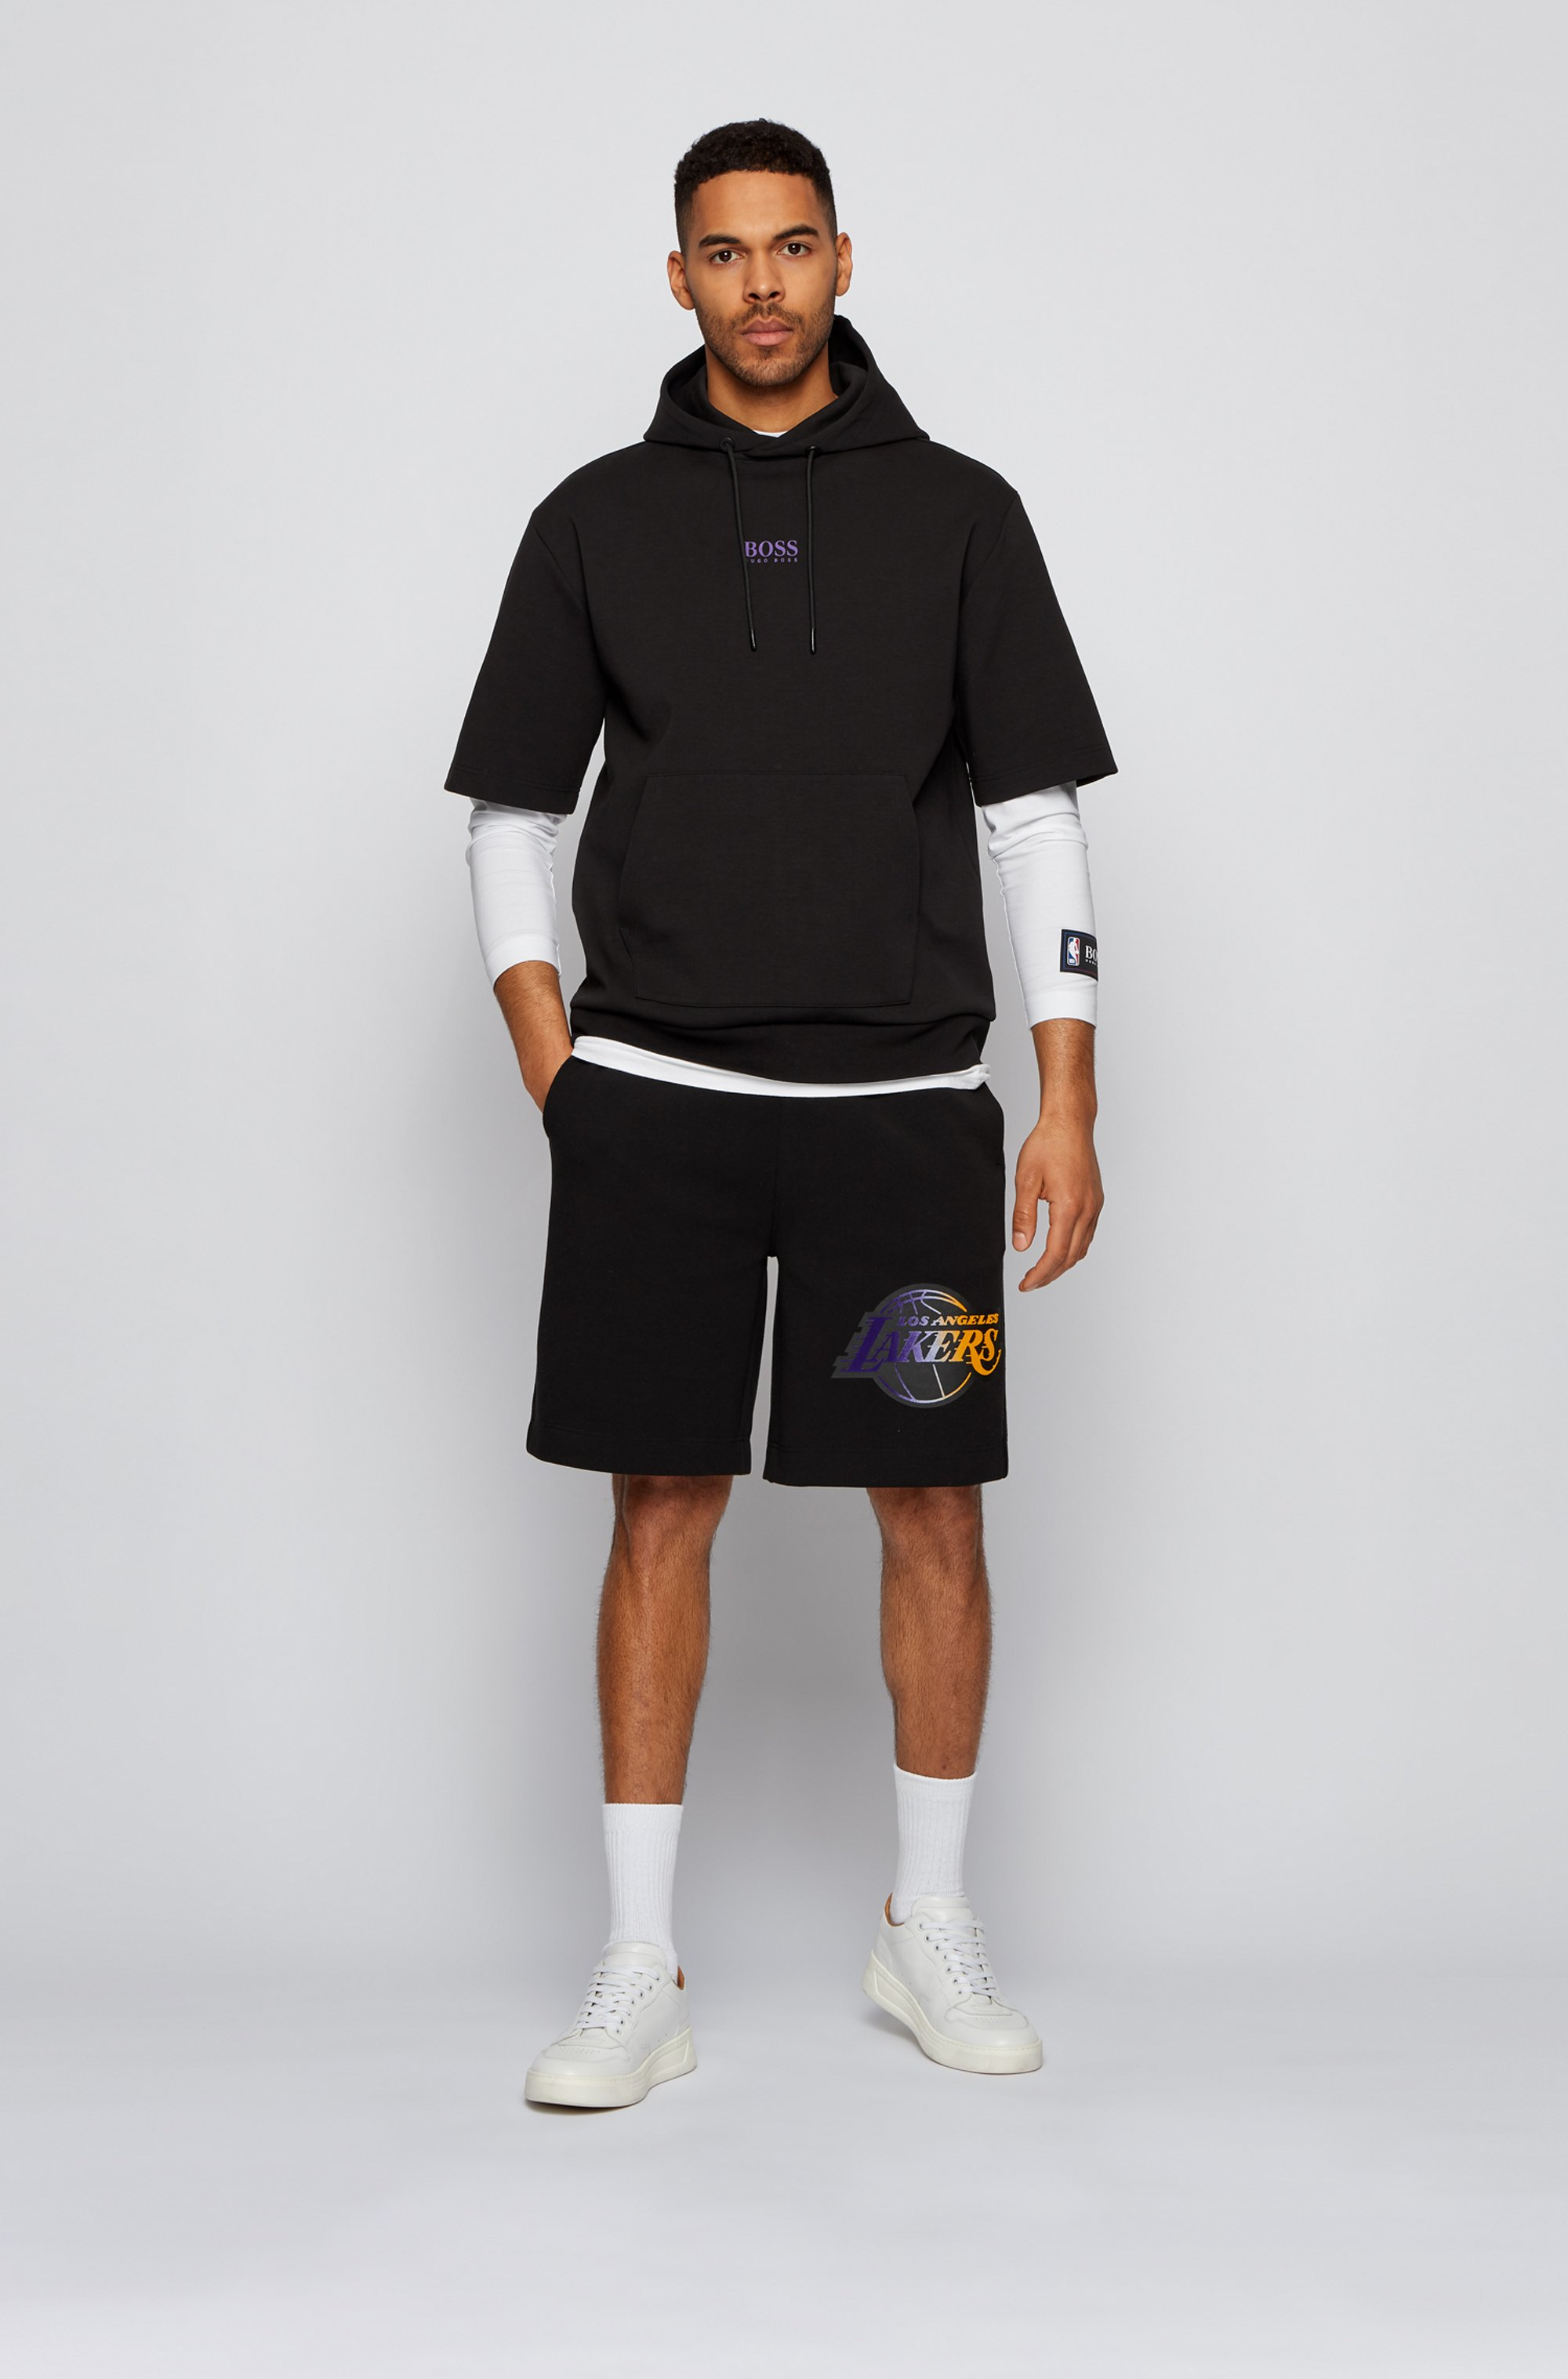 BOSS x NBA short-sleeved hoodie with team logo